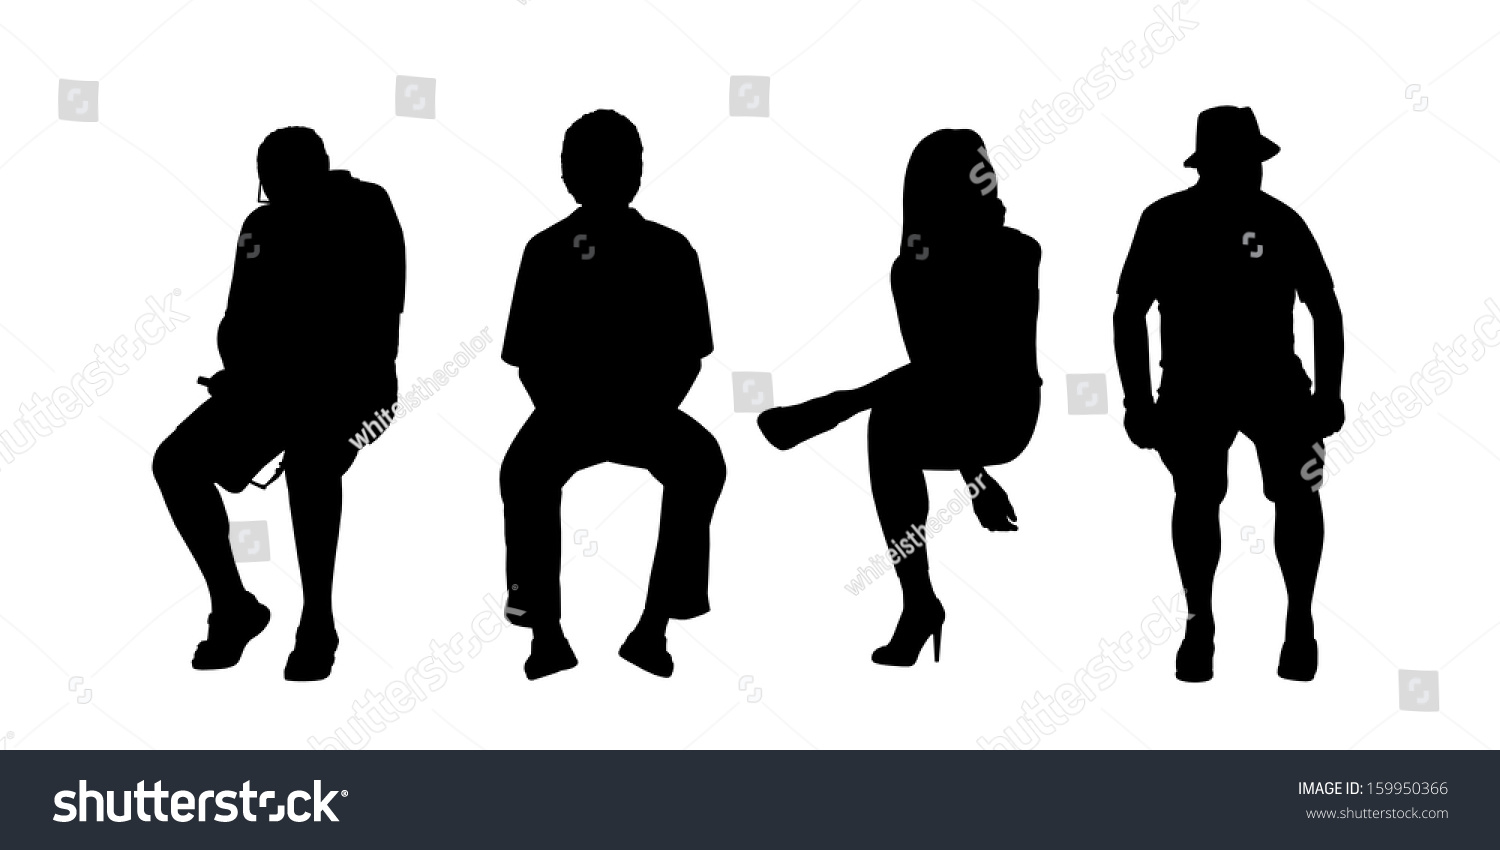 black silhouettes people different sex age stock illustration